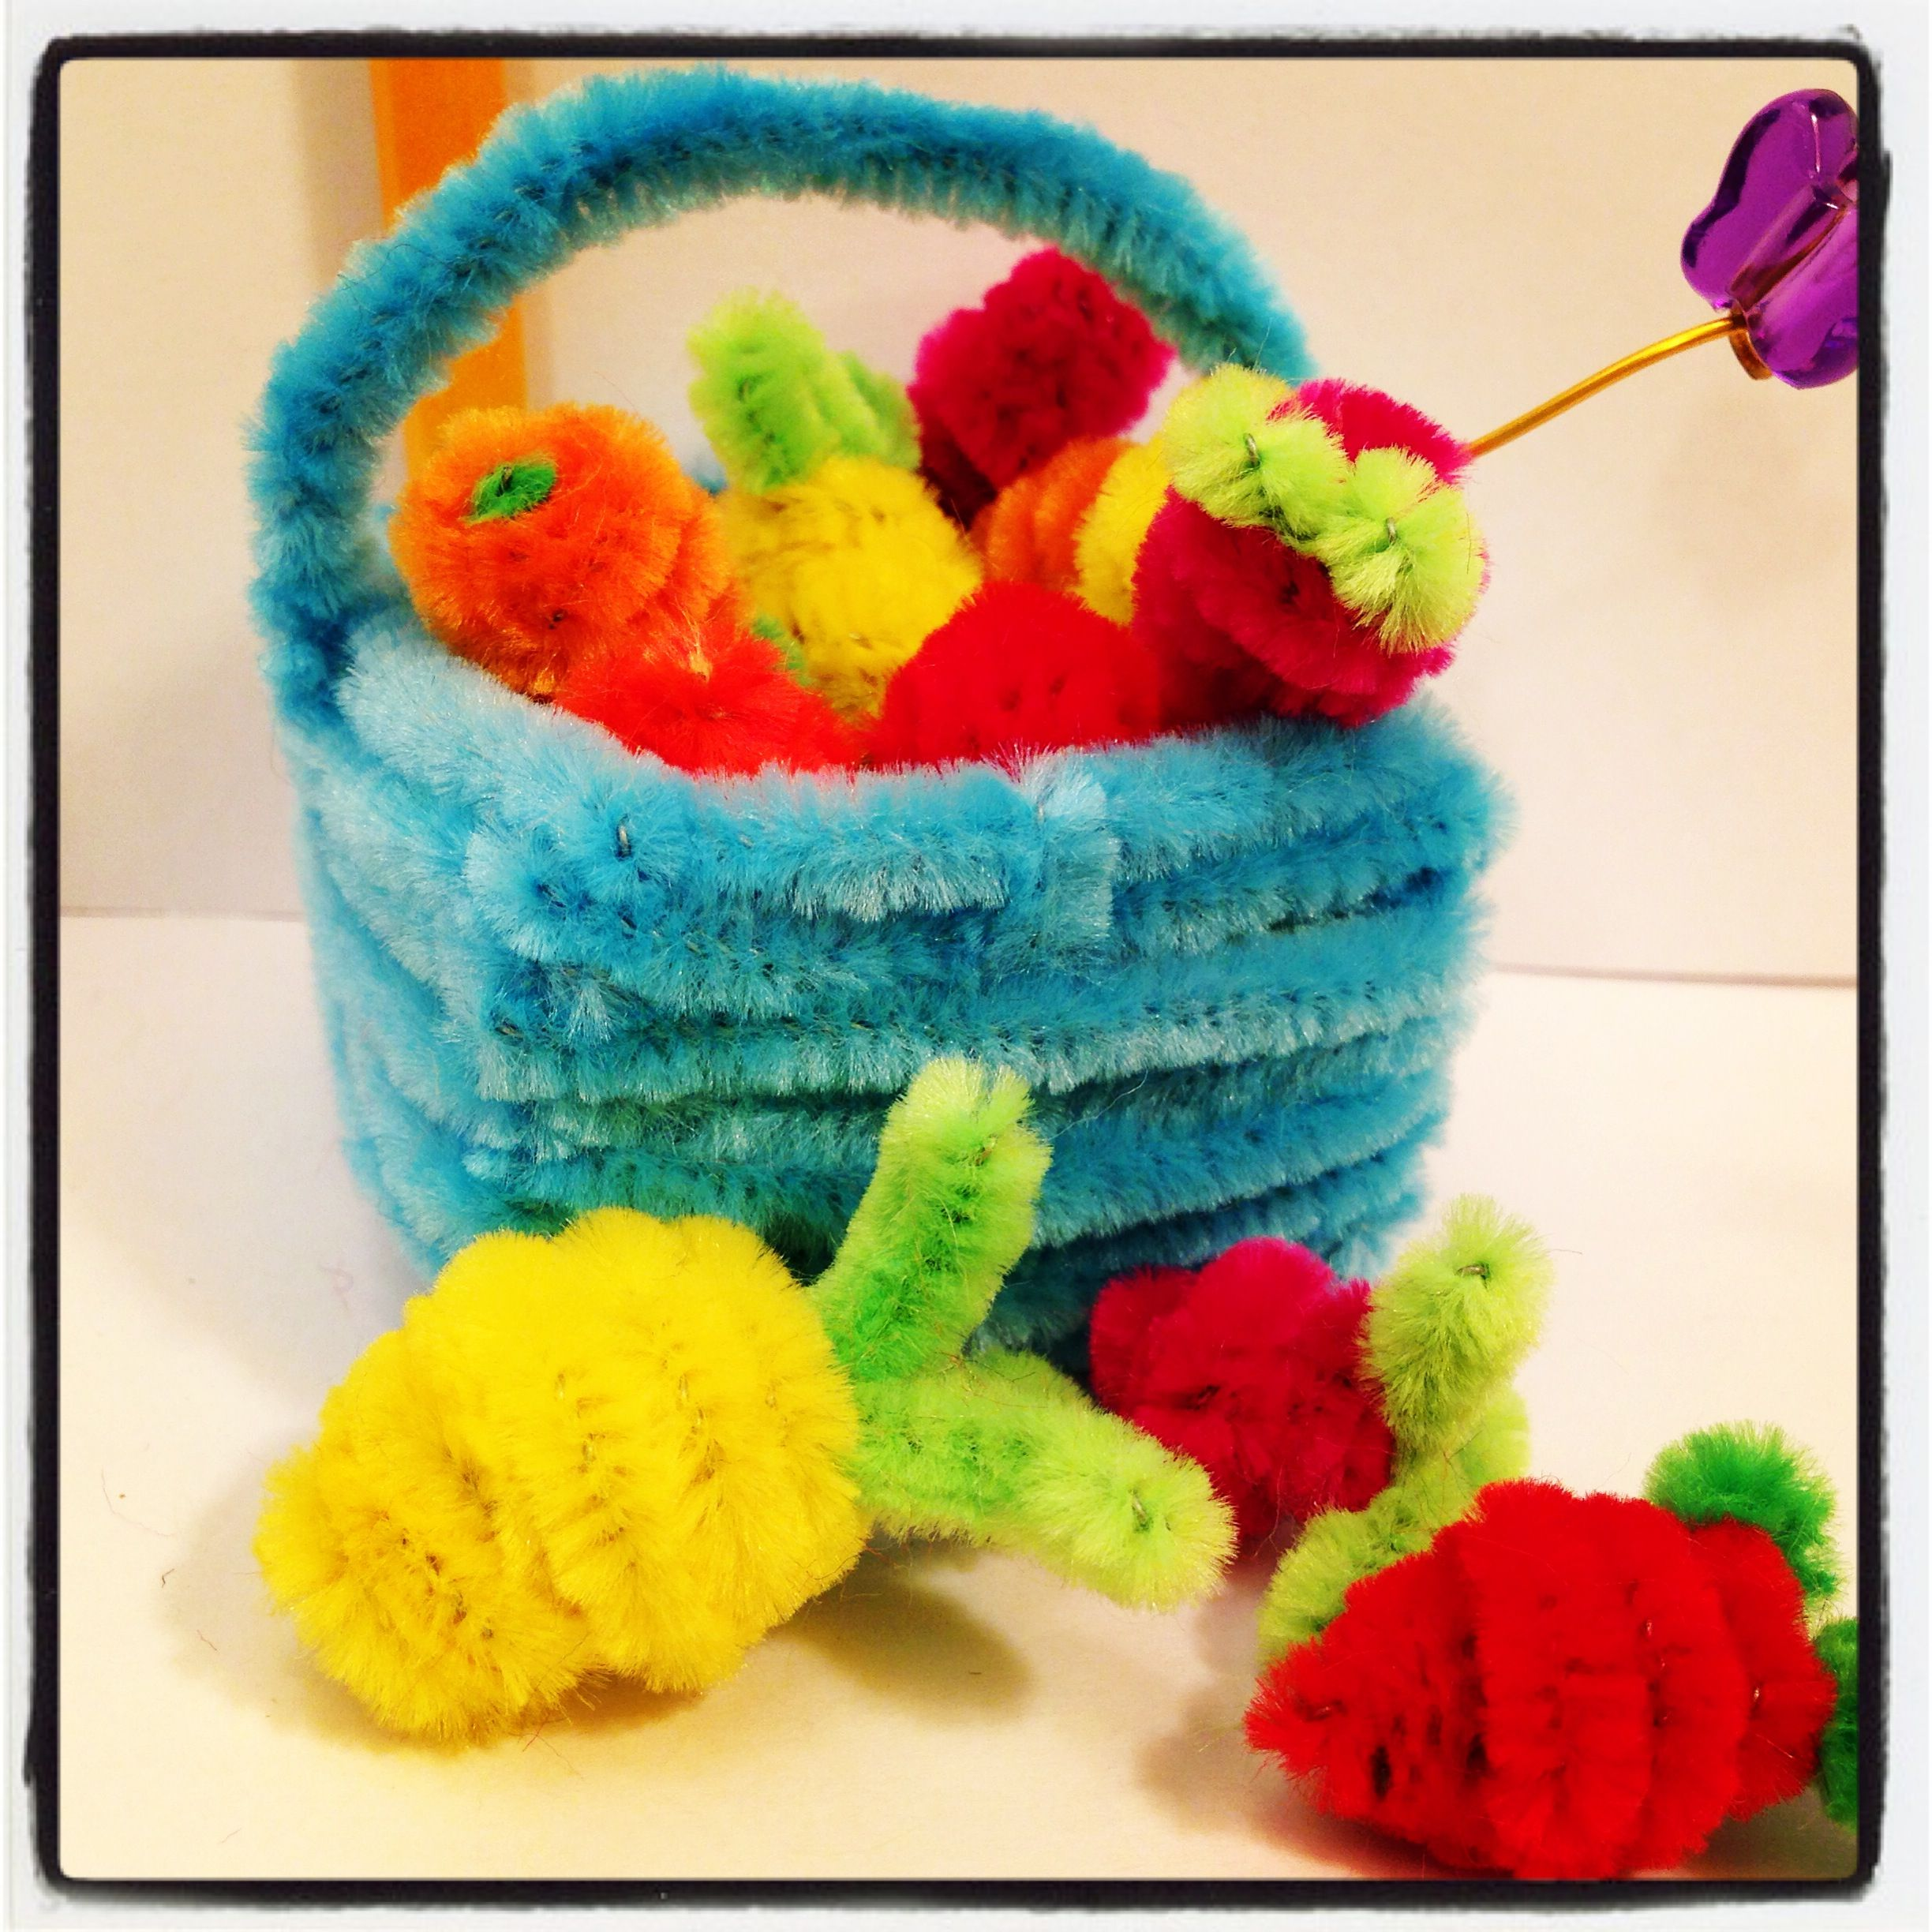 Fruit Basket Art And Craft : Pin by elena barsky on pipe cleaner crafts